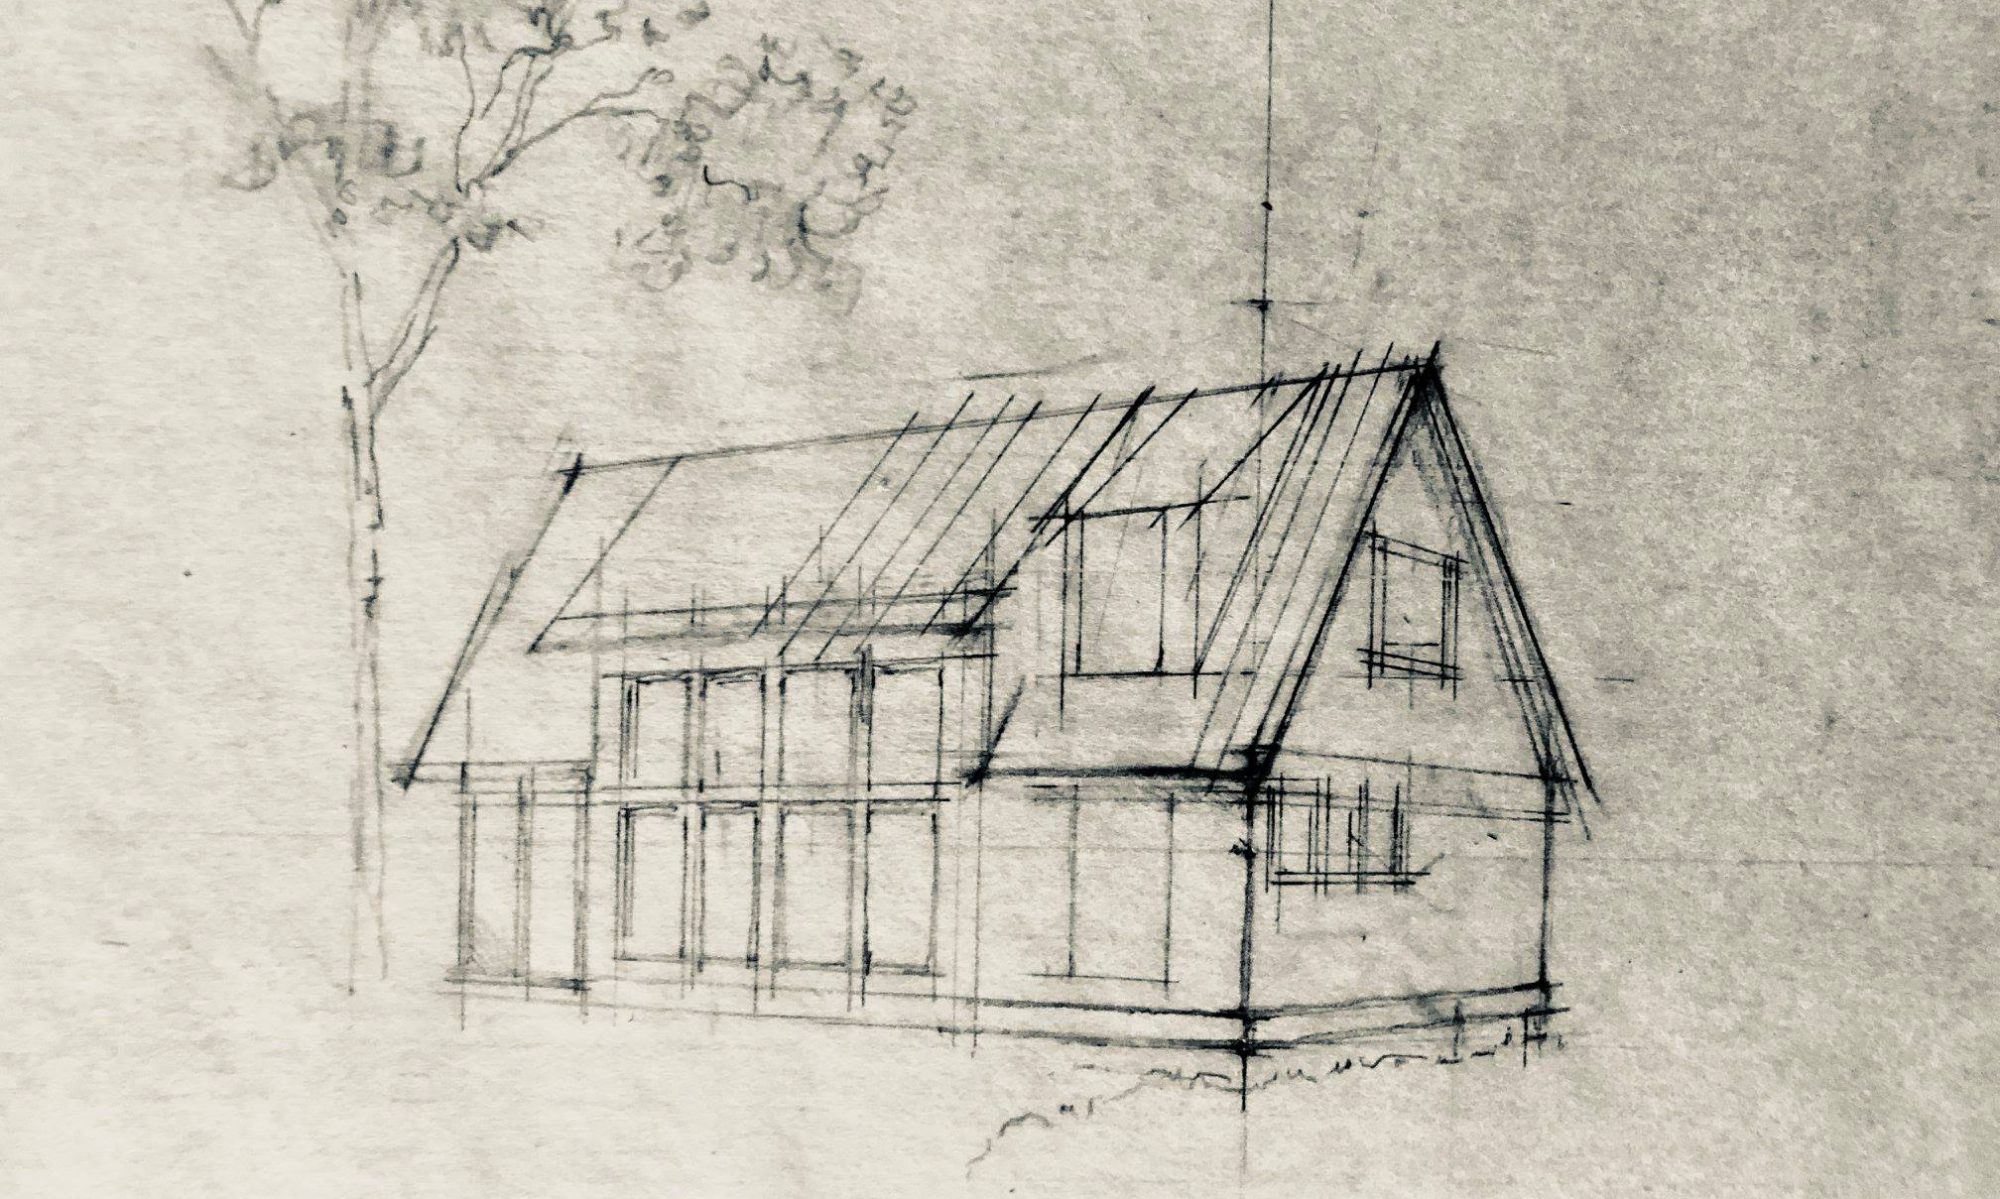 G.L. Frost architecture